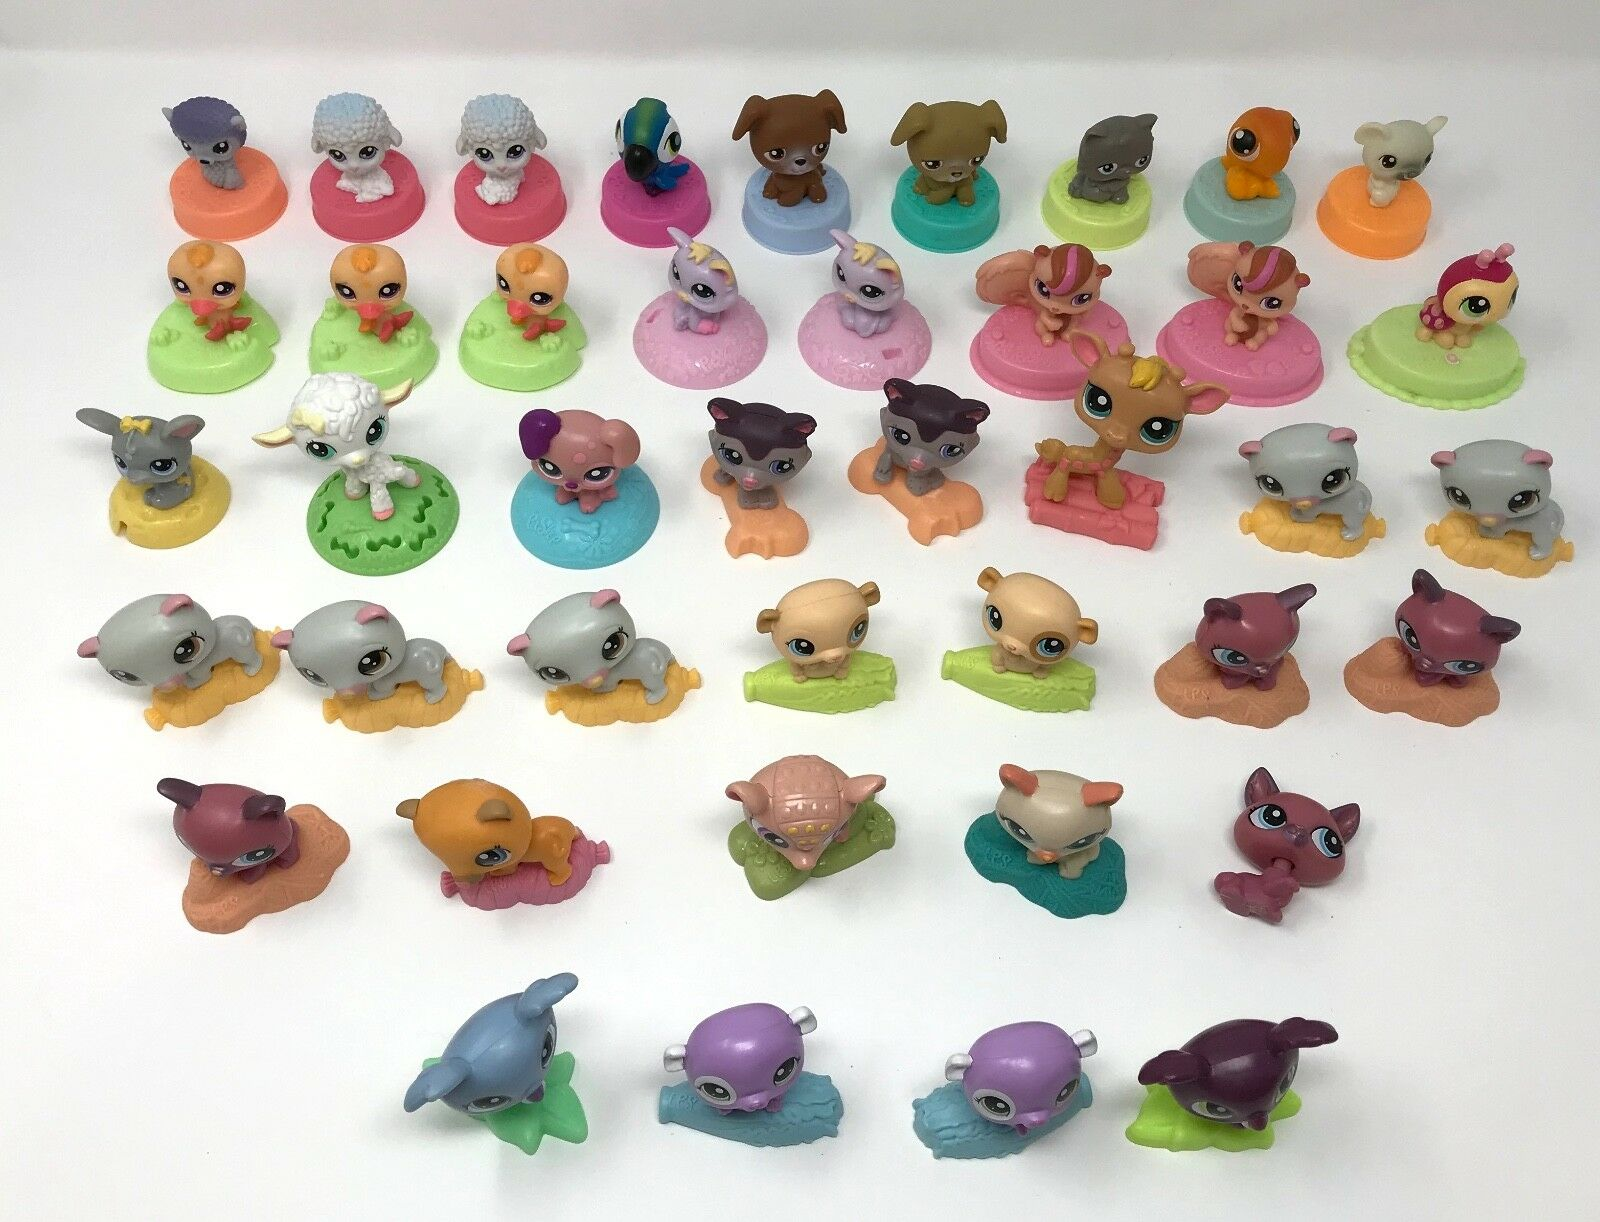 Huge Huge Huge lot of 41 Littlest Pet Shop McDonalds toys LPS animals dog cat Christmas a 725800